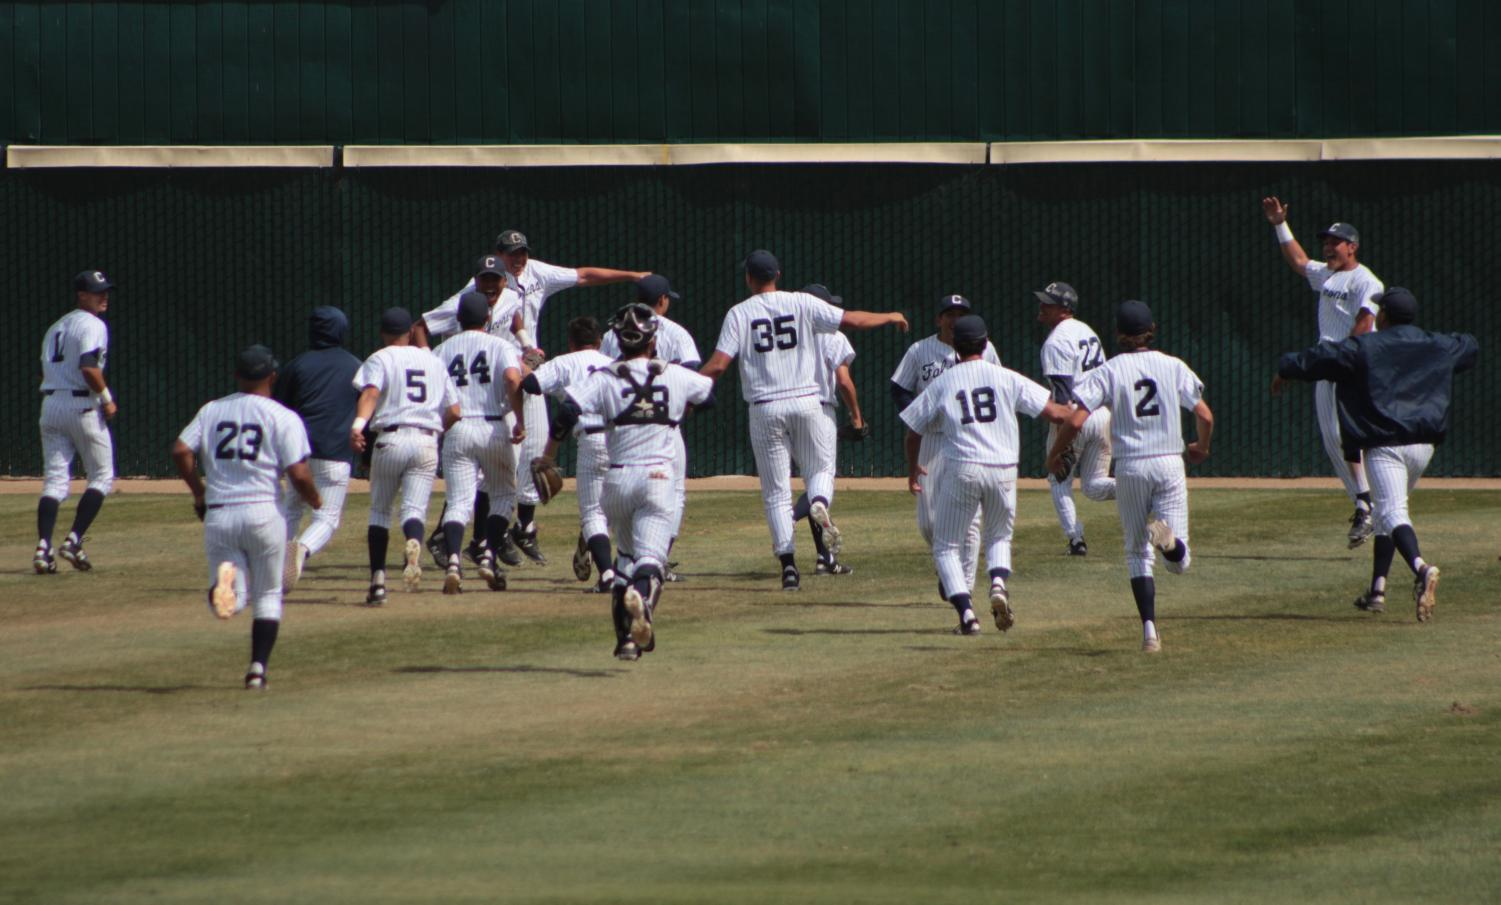 The Falcons baseball team celebrating their 14-0 shutout against the Long Beach City College Vikings.